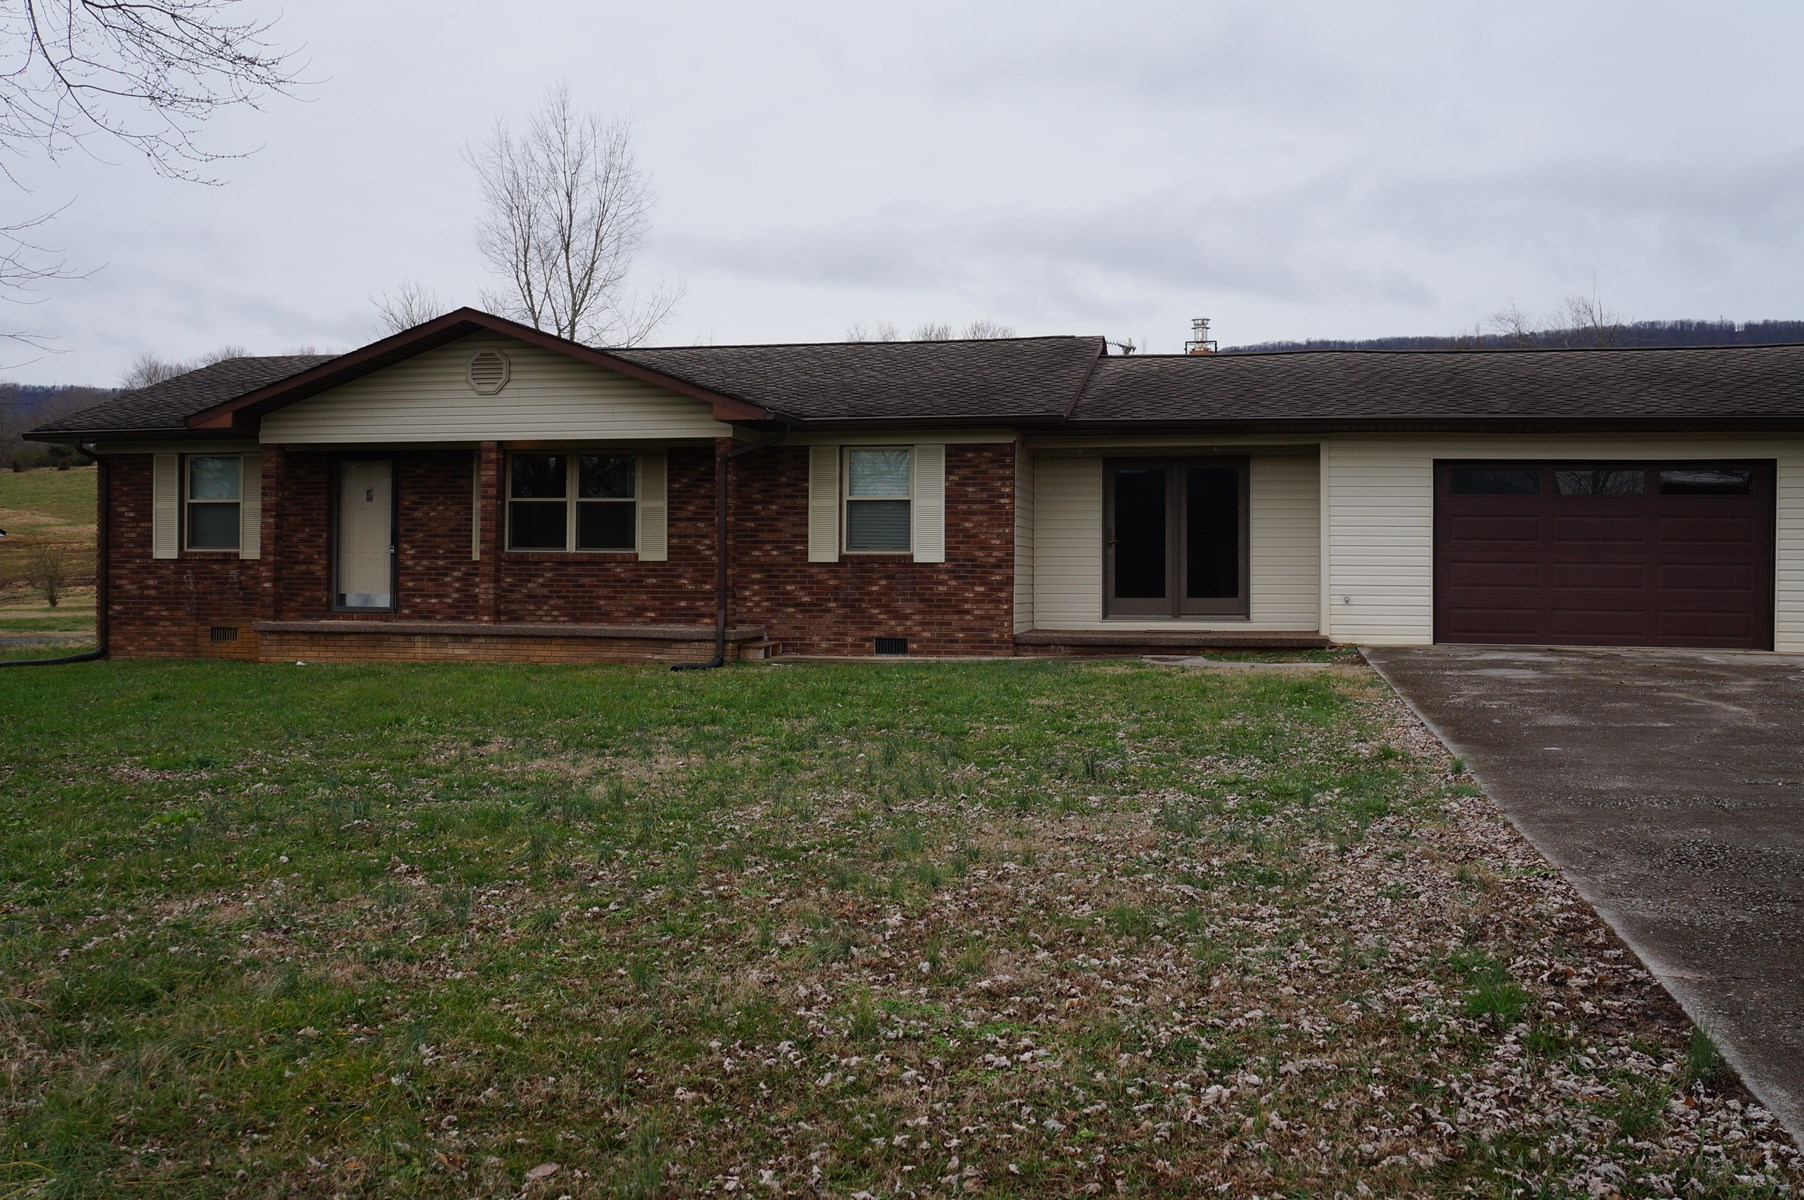 3 BR 1 1/2 BA Brick Rancher in Rutledge, Tennessee For Sale